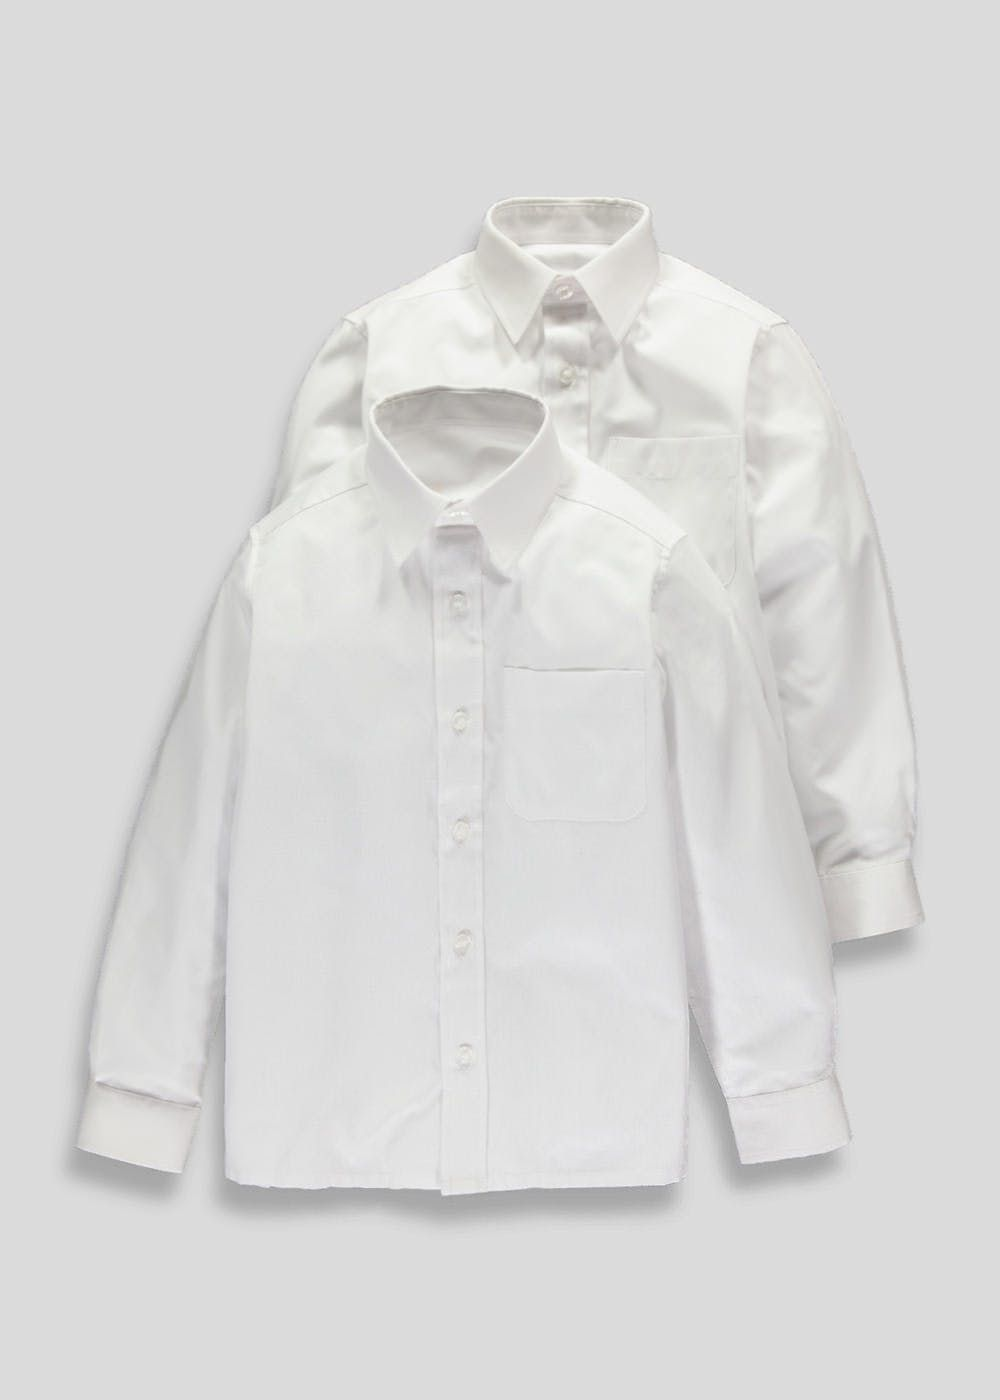 543c9c329 This 2 pack of boys white long sleeve school shirts feature a touch close  (up to 7 years only) and button front fastening with lasting comfort and ...